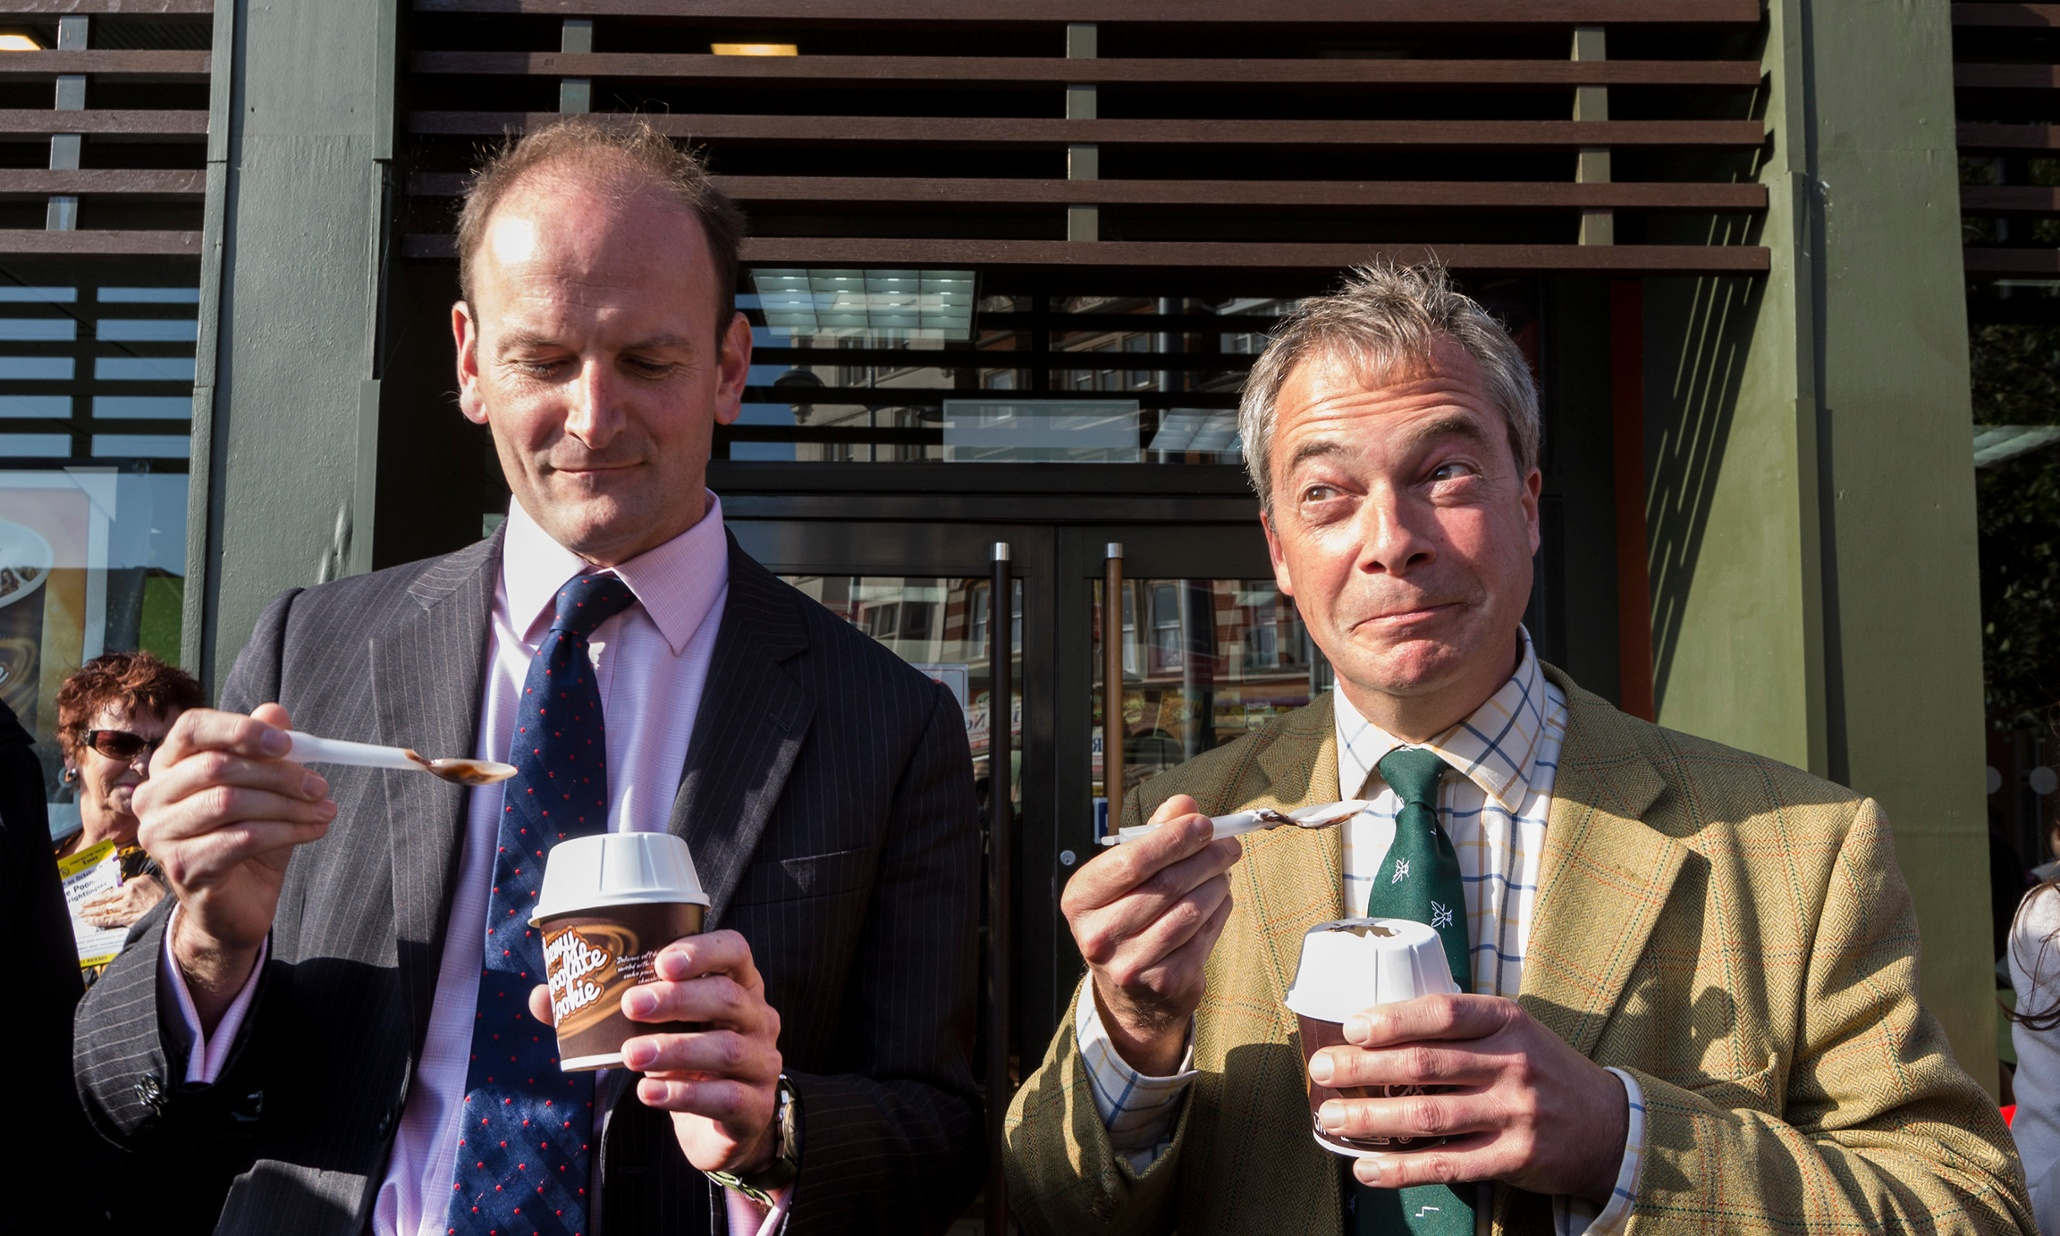 Ukip's only MP joins calls for Farage to step down